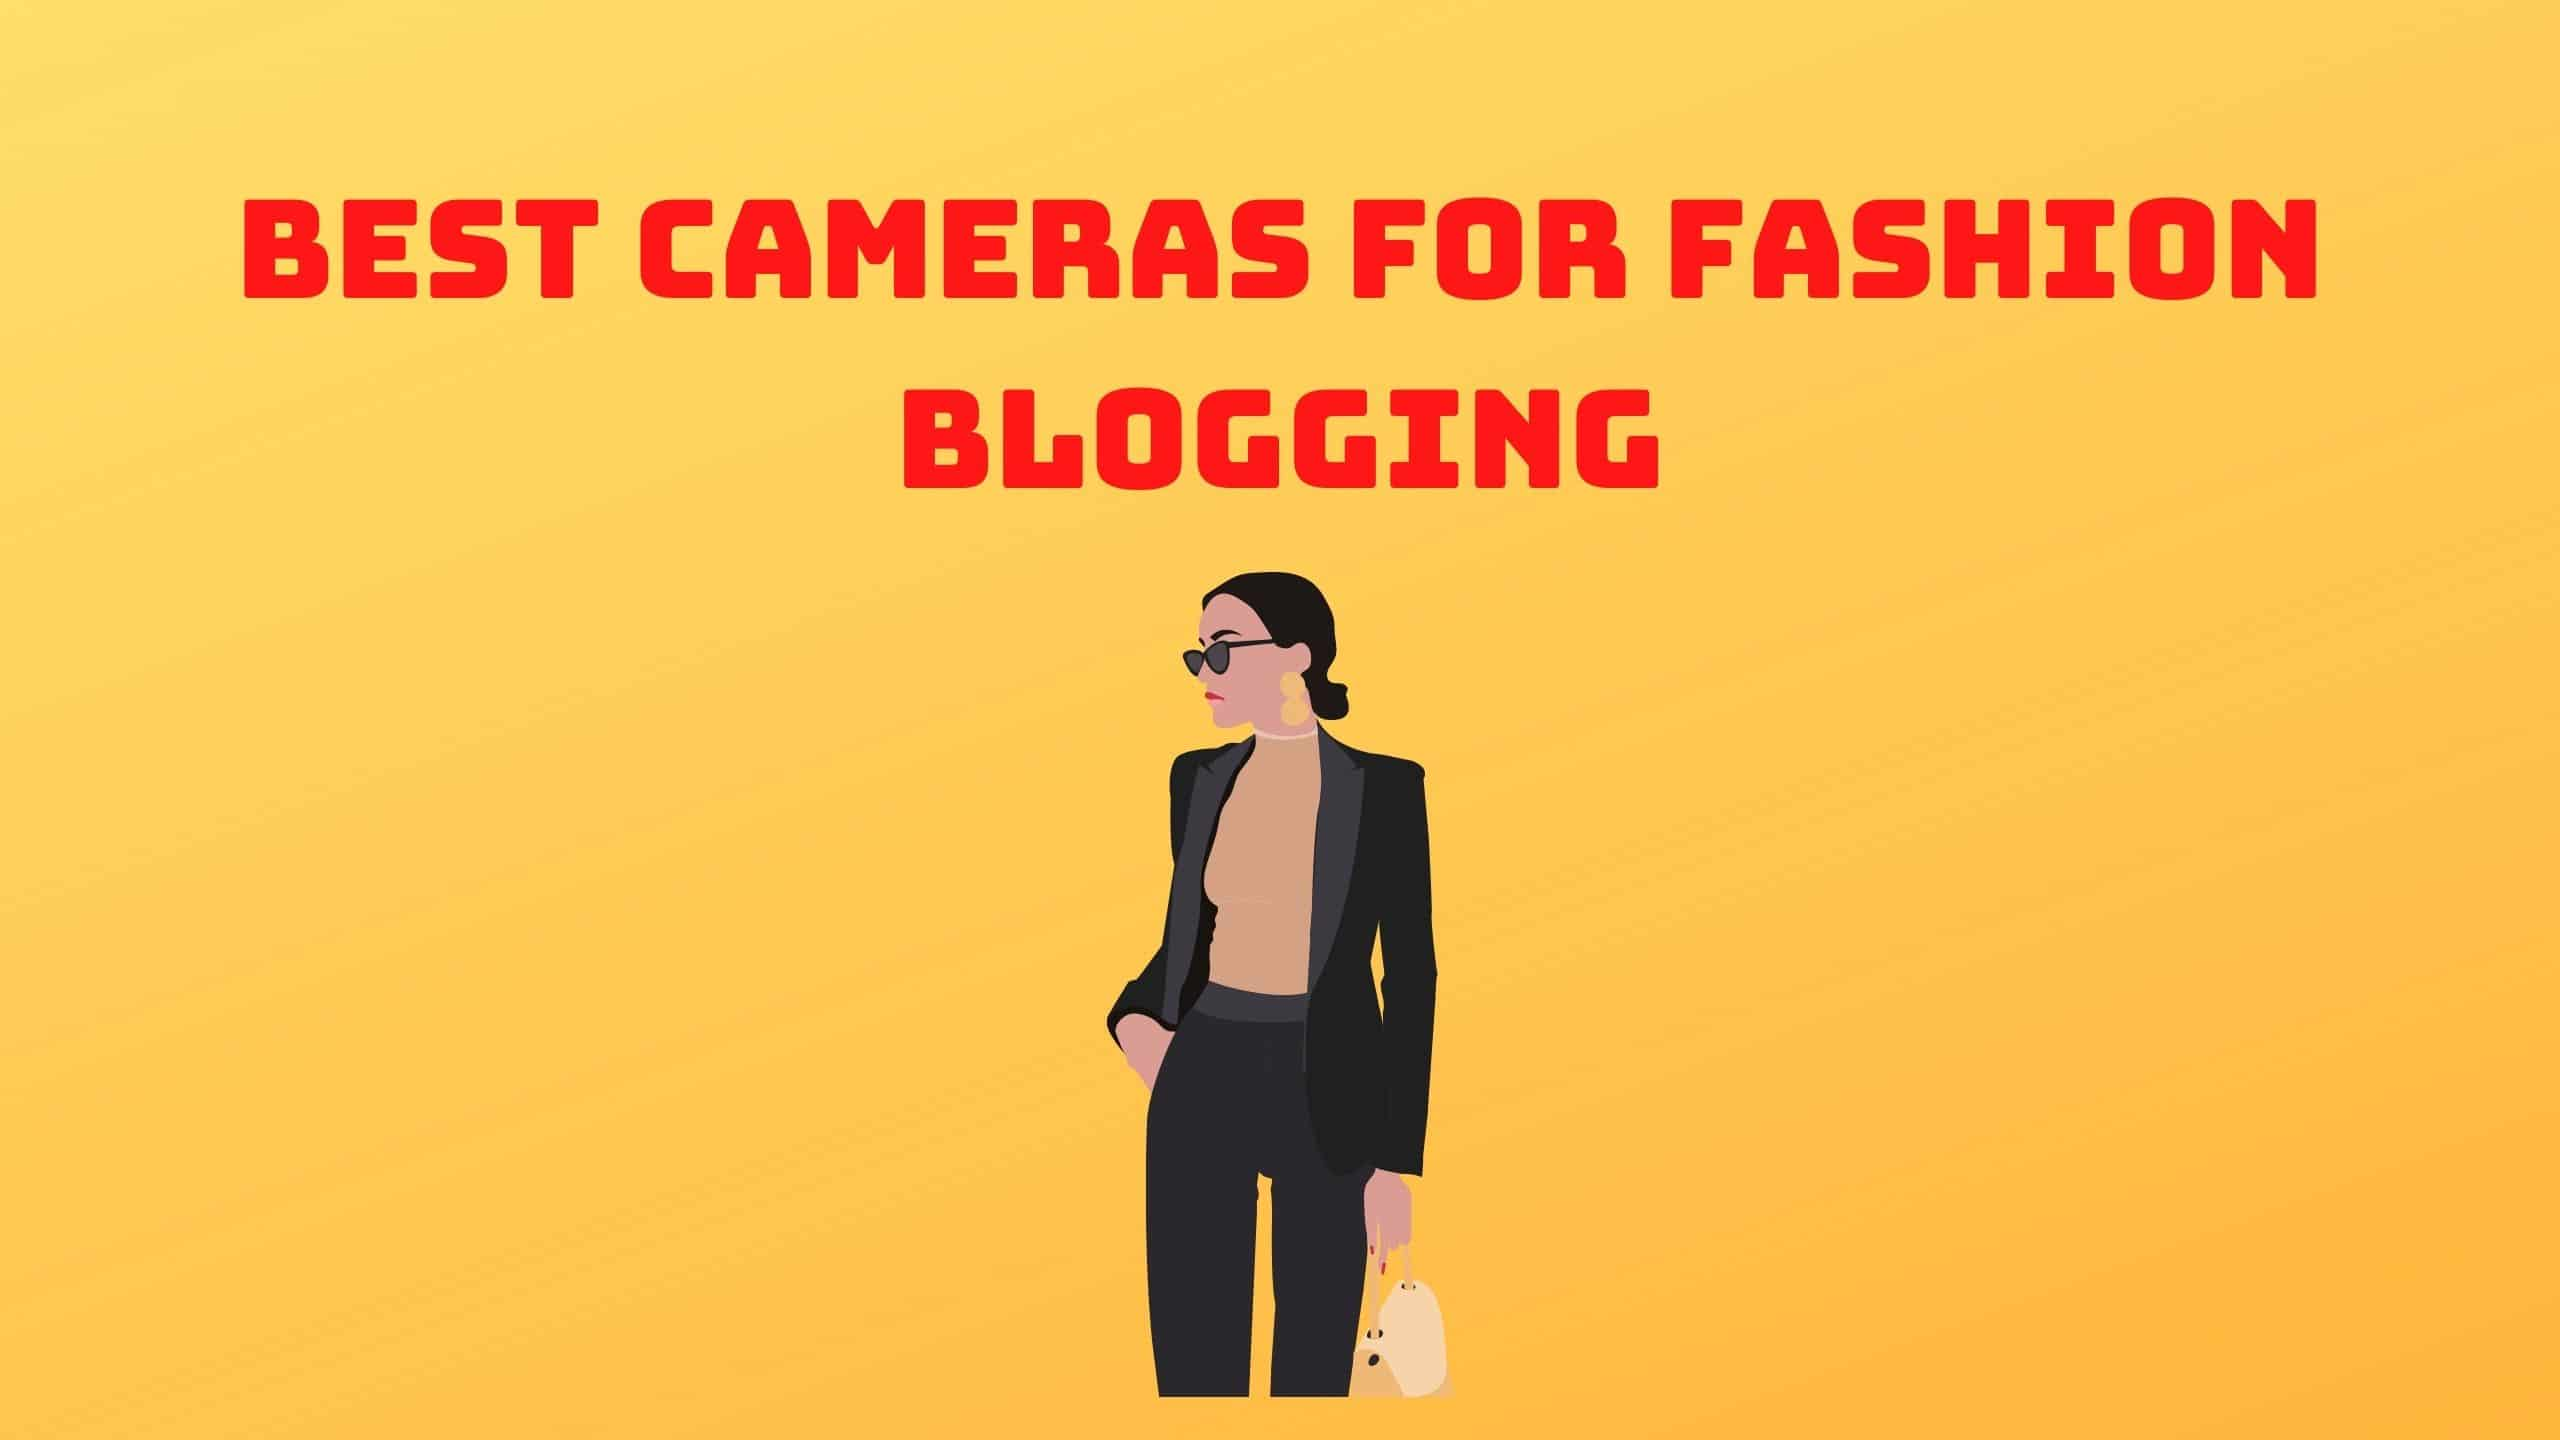 Best Cameras for Fashion Blogging (1)